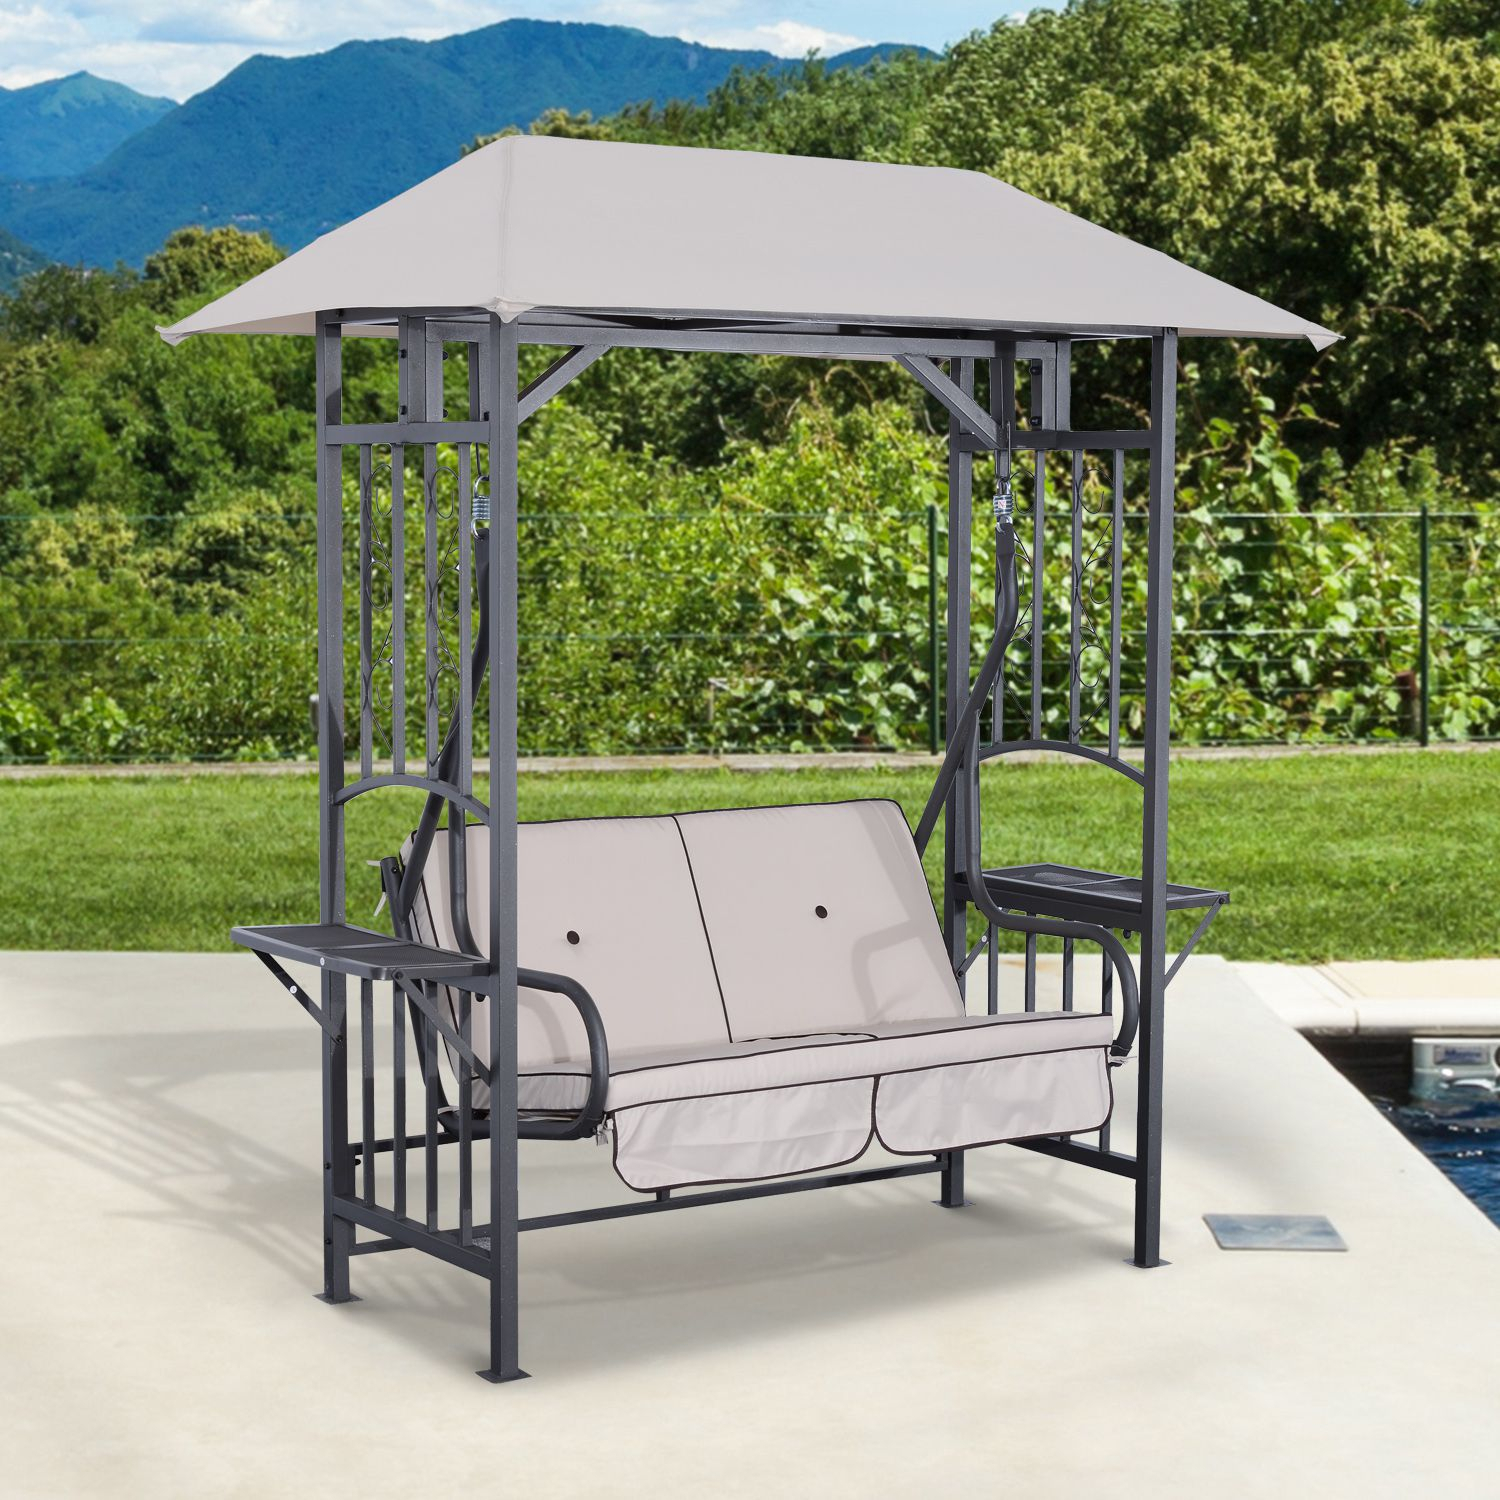 Outsunny 2 Person Patio Swing Chair Porch Outdoor Hammock Loveseat W/canopy Pertaining To 2 Person Adjustable Tilt Canopy Patio Loveseat Porch Swings (View 24 of 25)